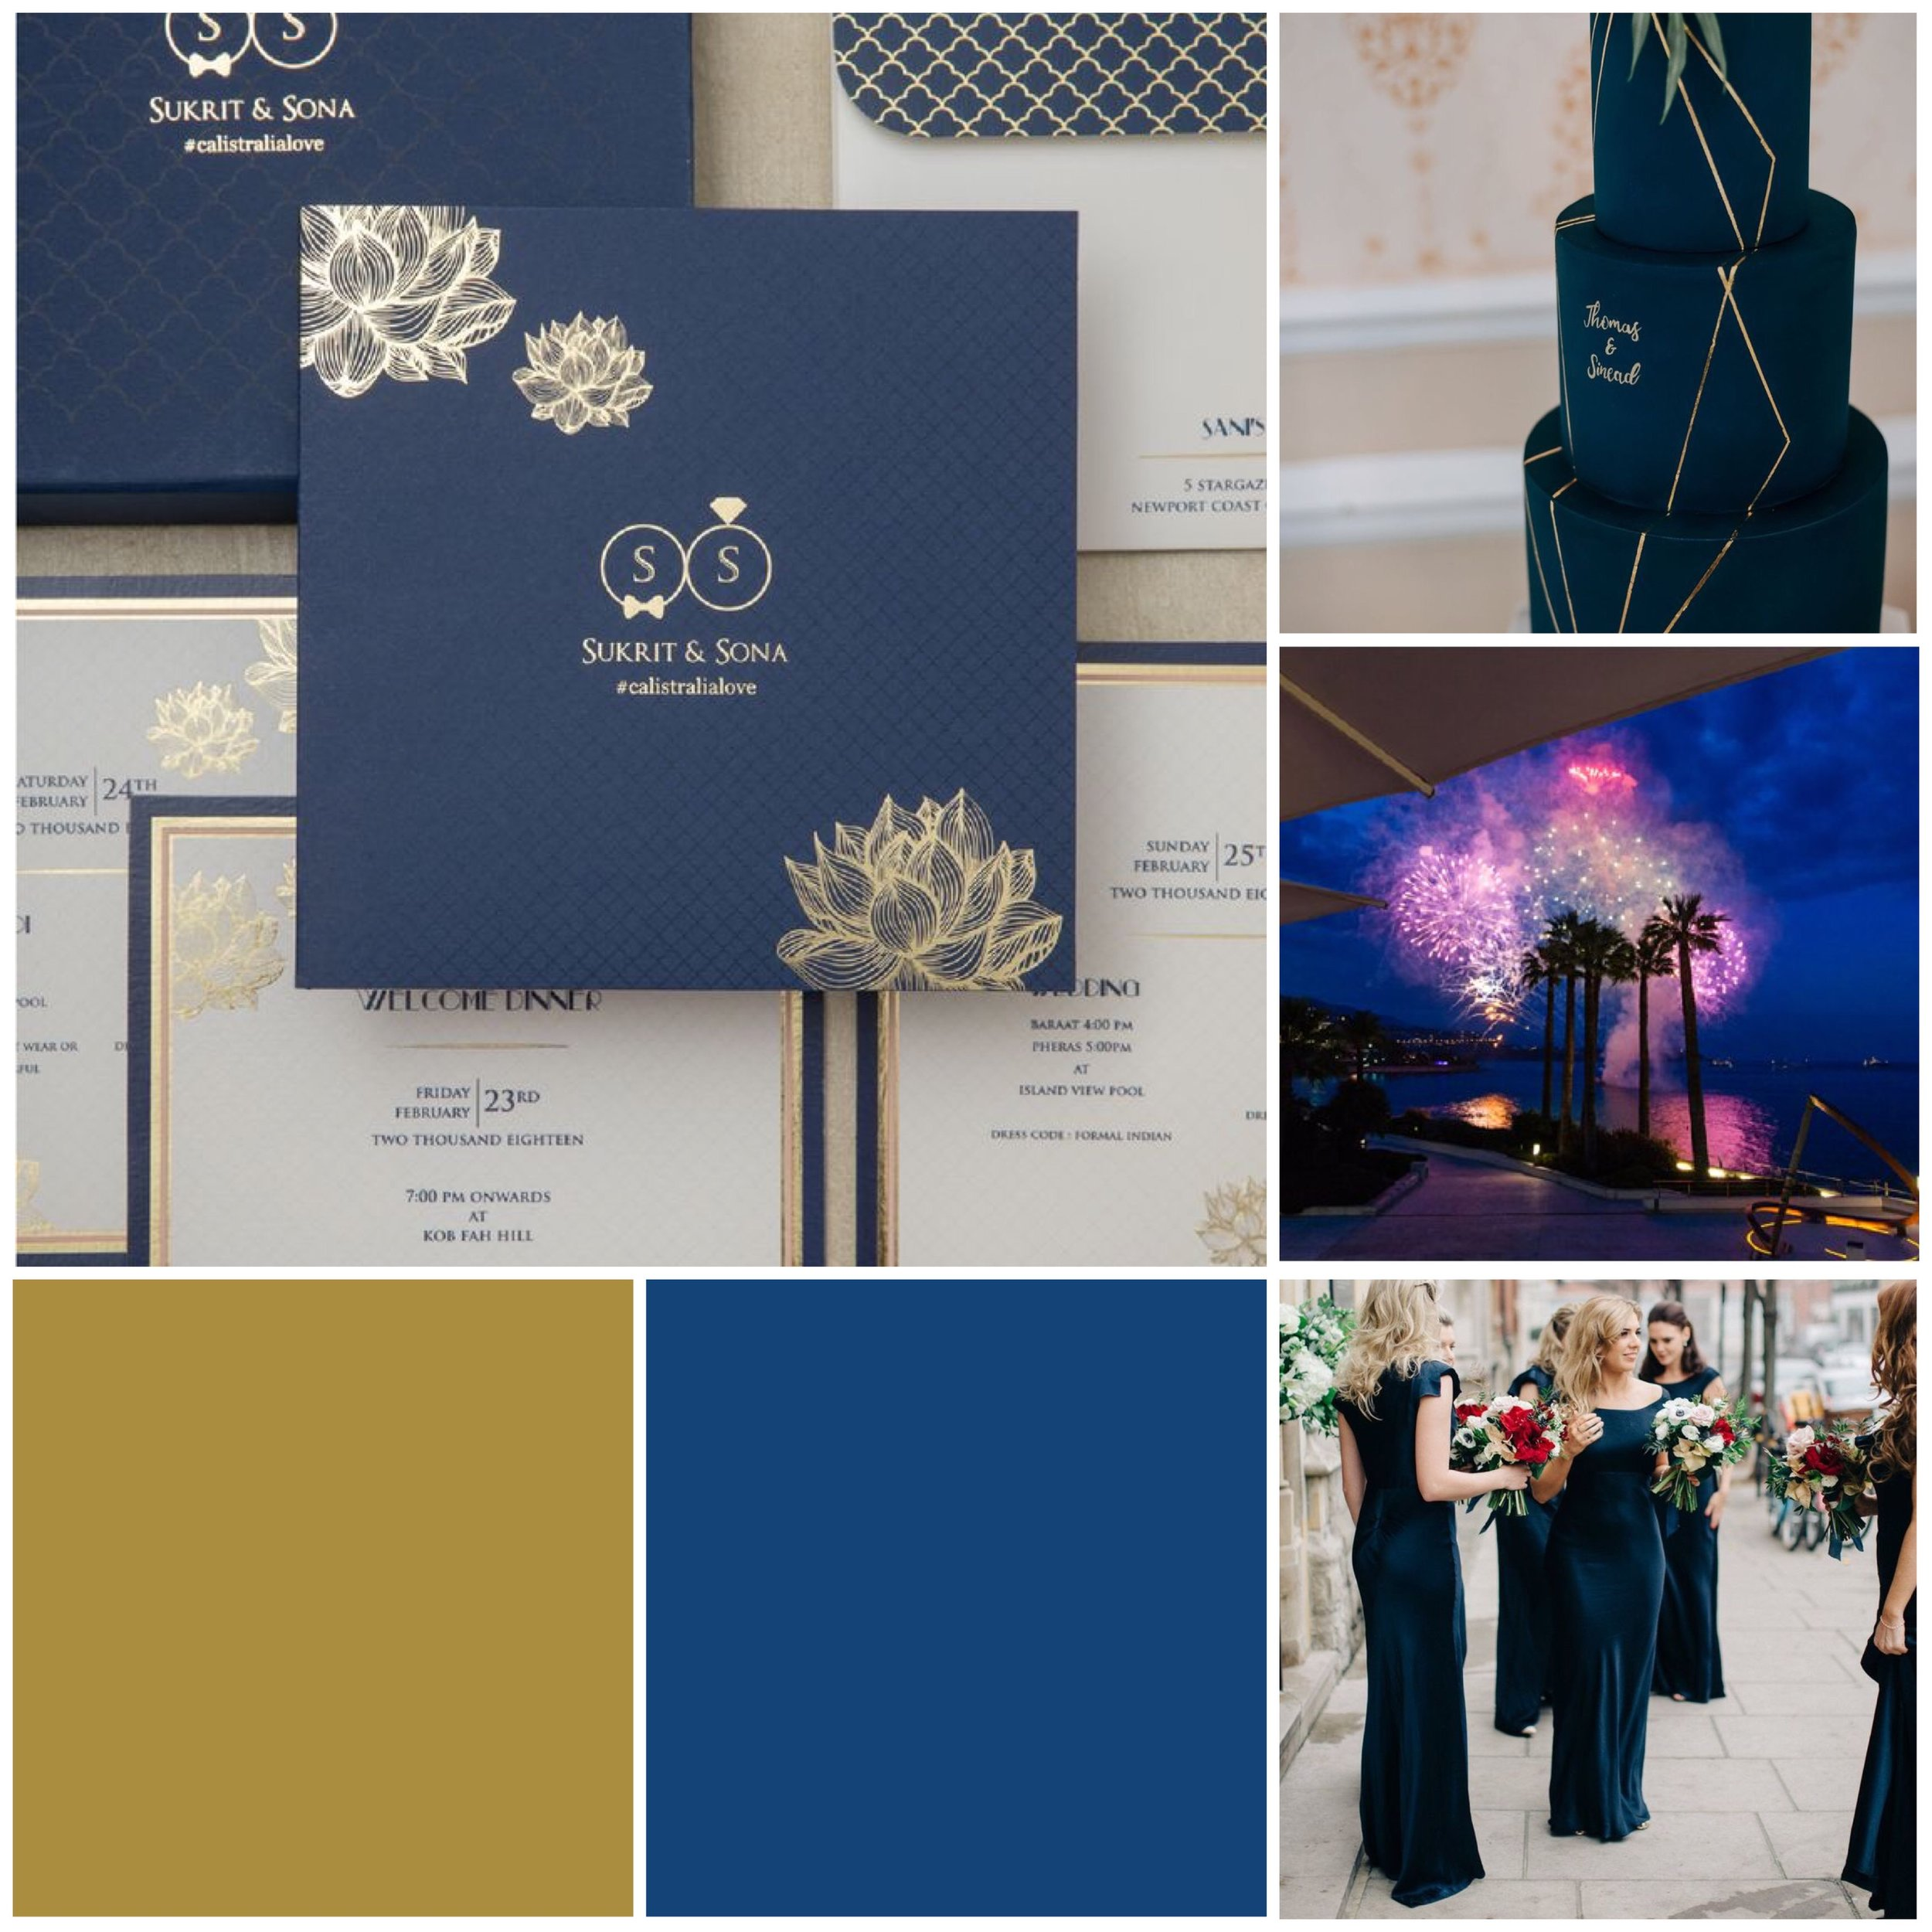 Monaco Blue & Gold Moodboard for your wedding inspiration.